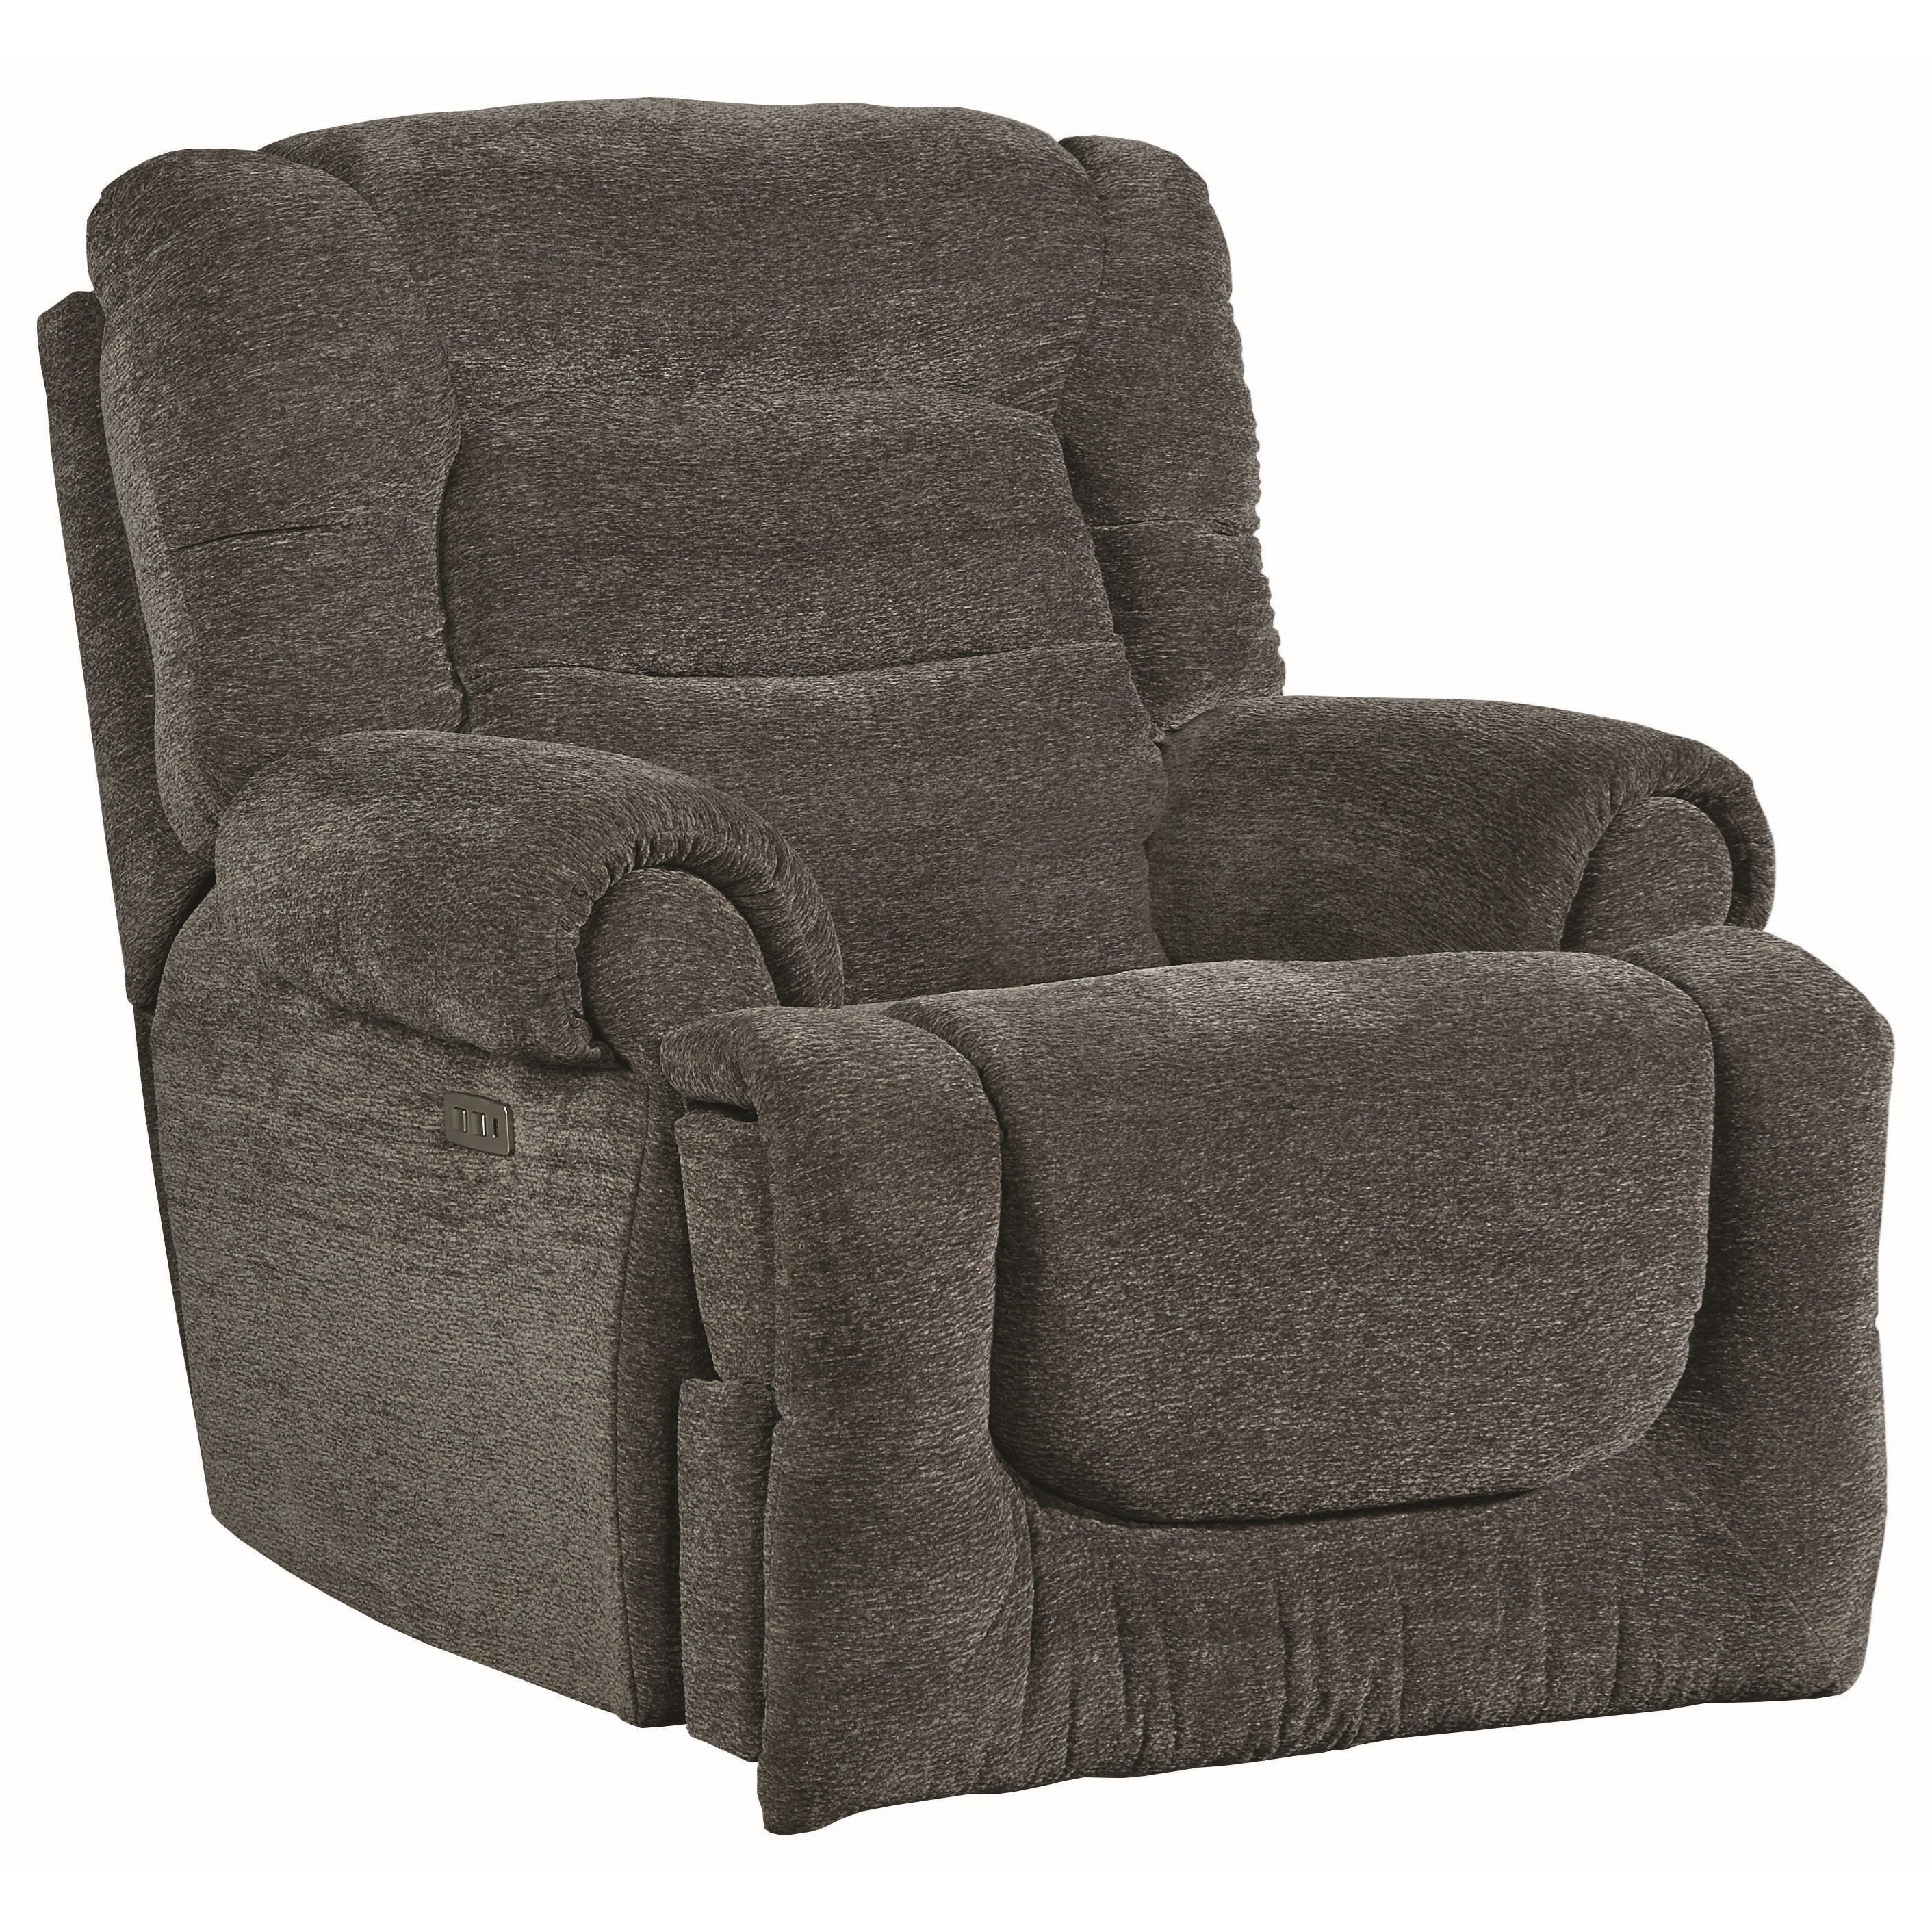 Pwr Headrest Big Man's Wall Hugger Recliner